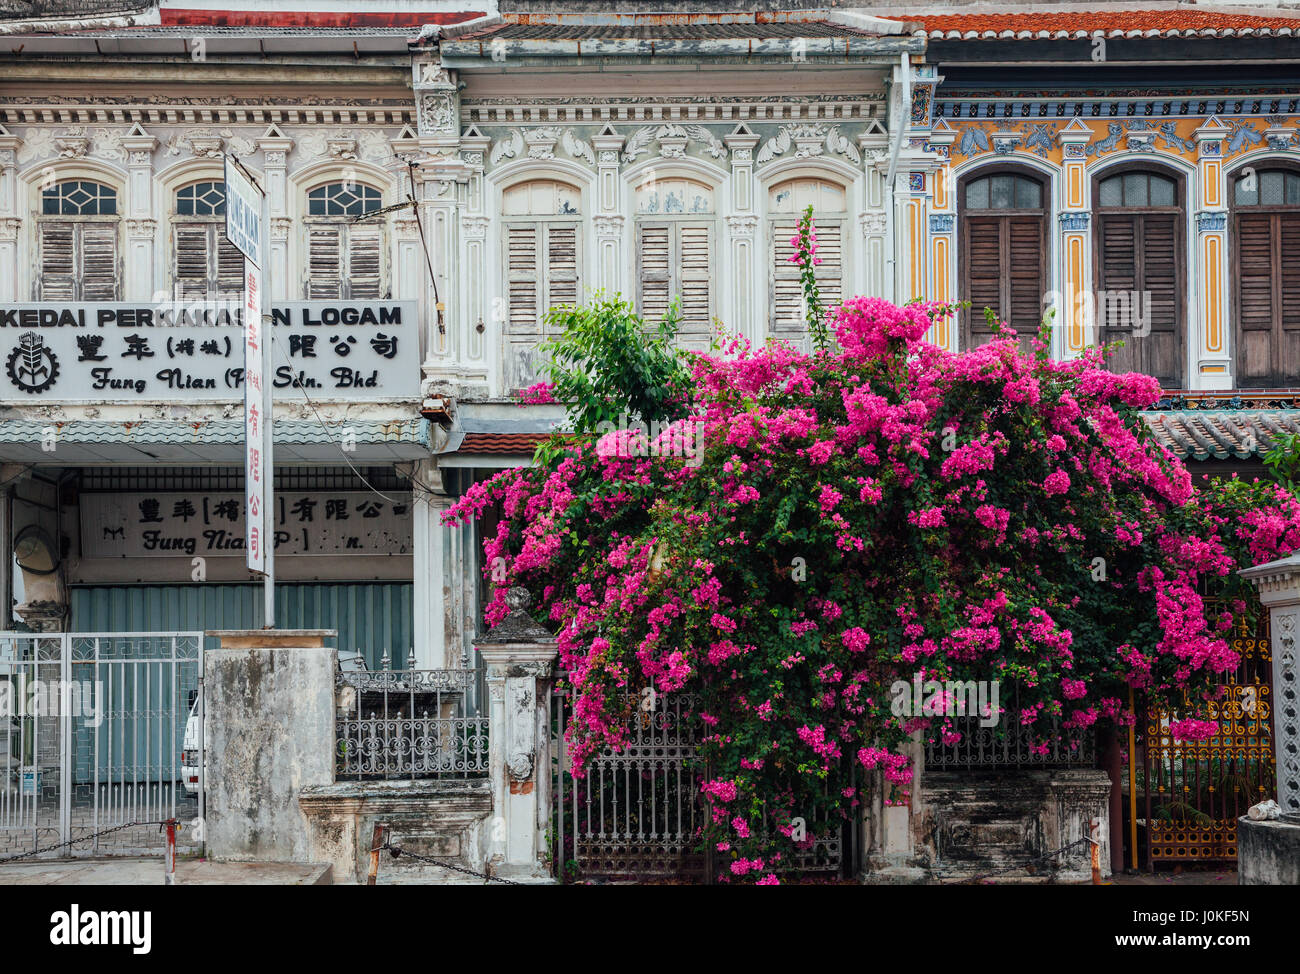 George Town,  Malaysia - March 22, 2016: Facade of the old shophouse building in UNESCO Heritage buffer zone in - Stock Image